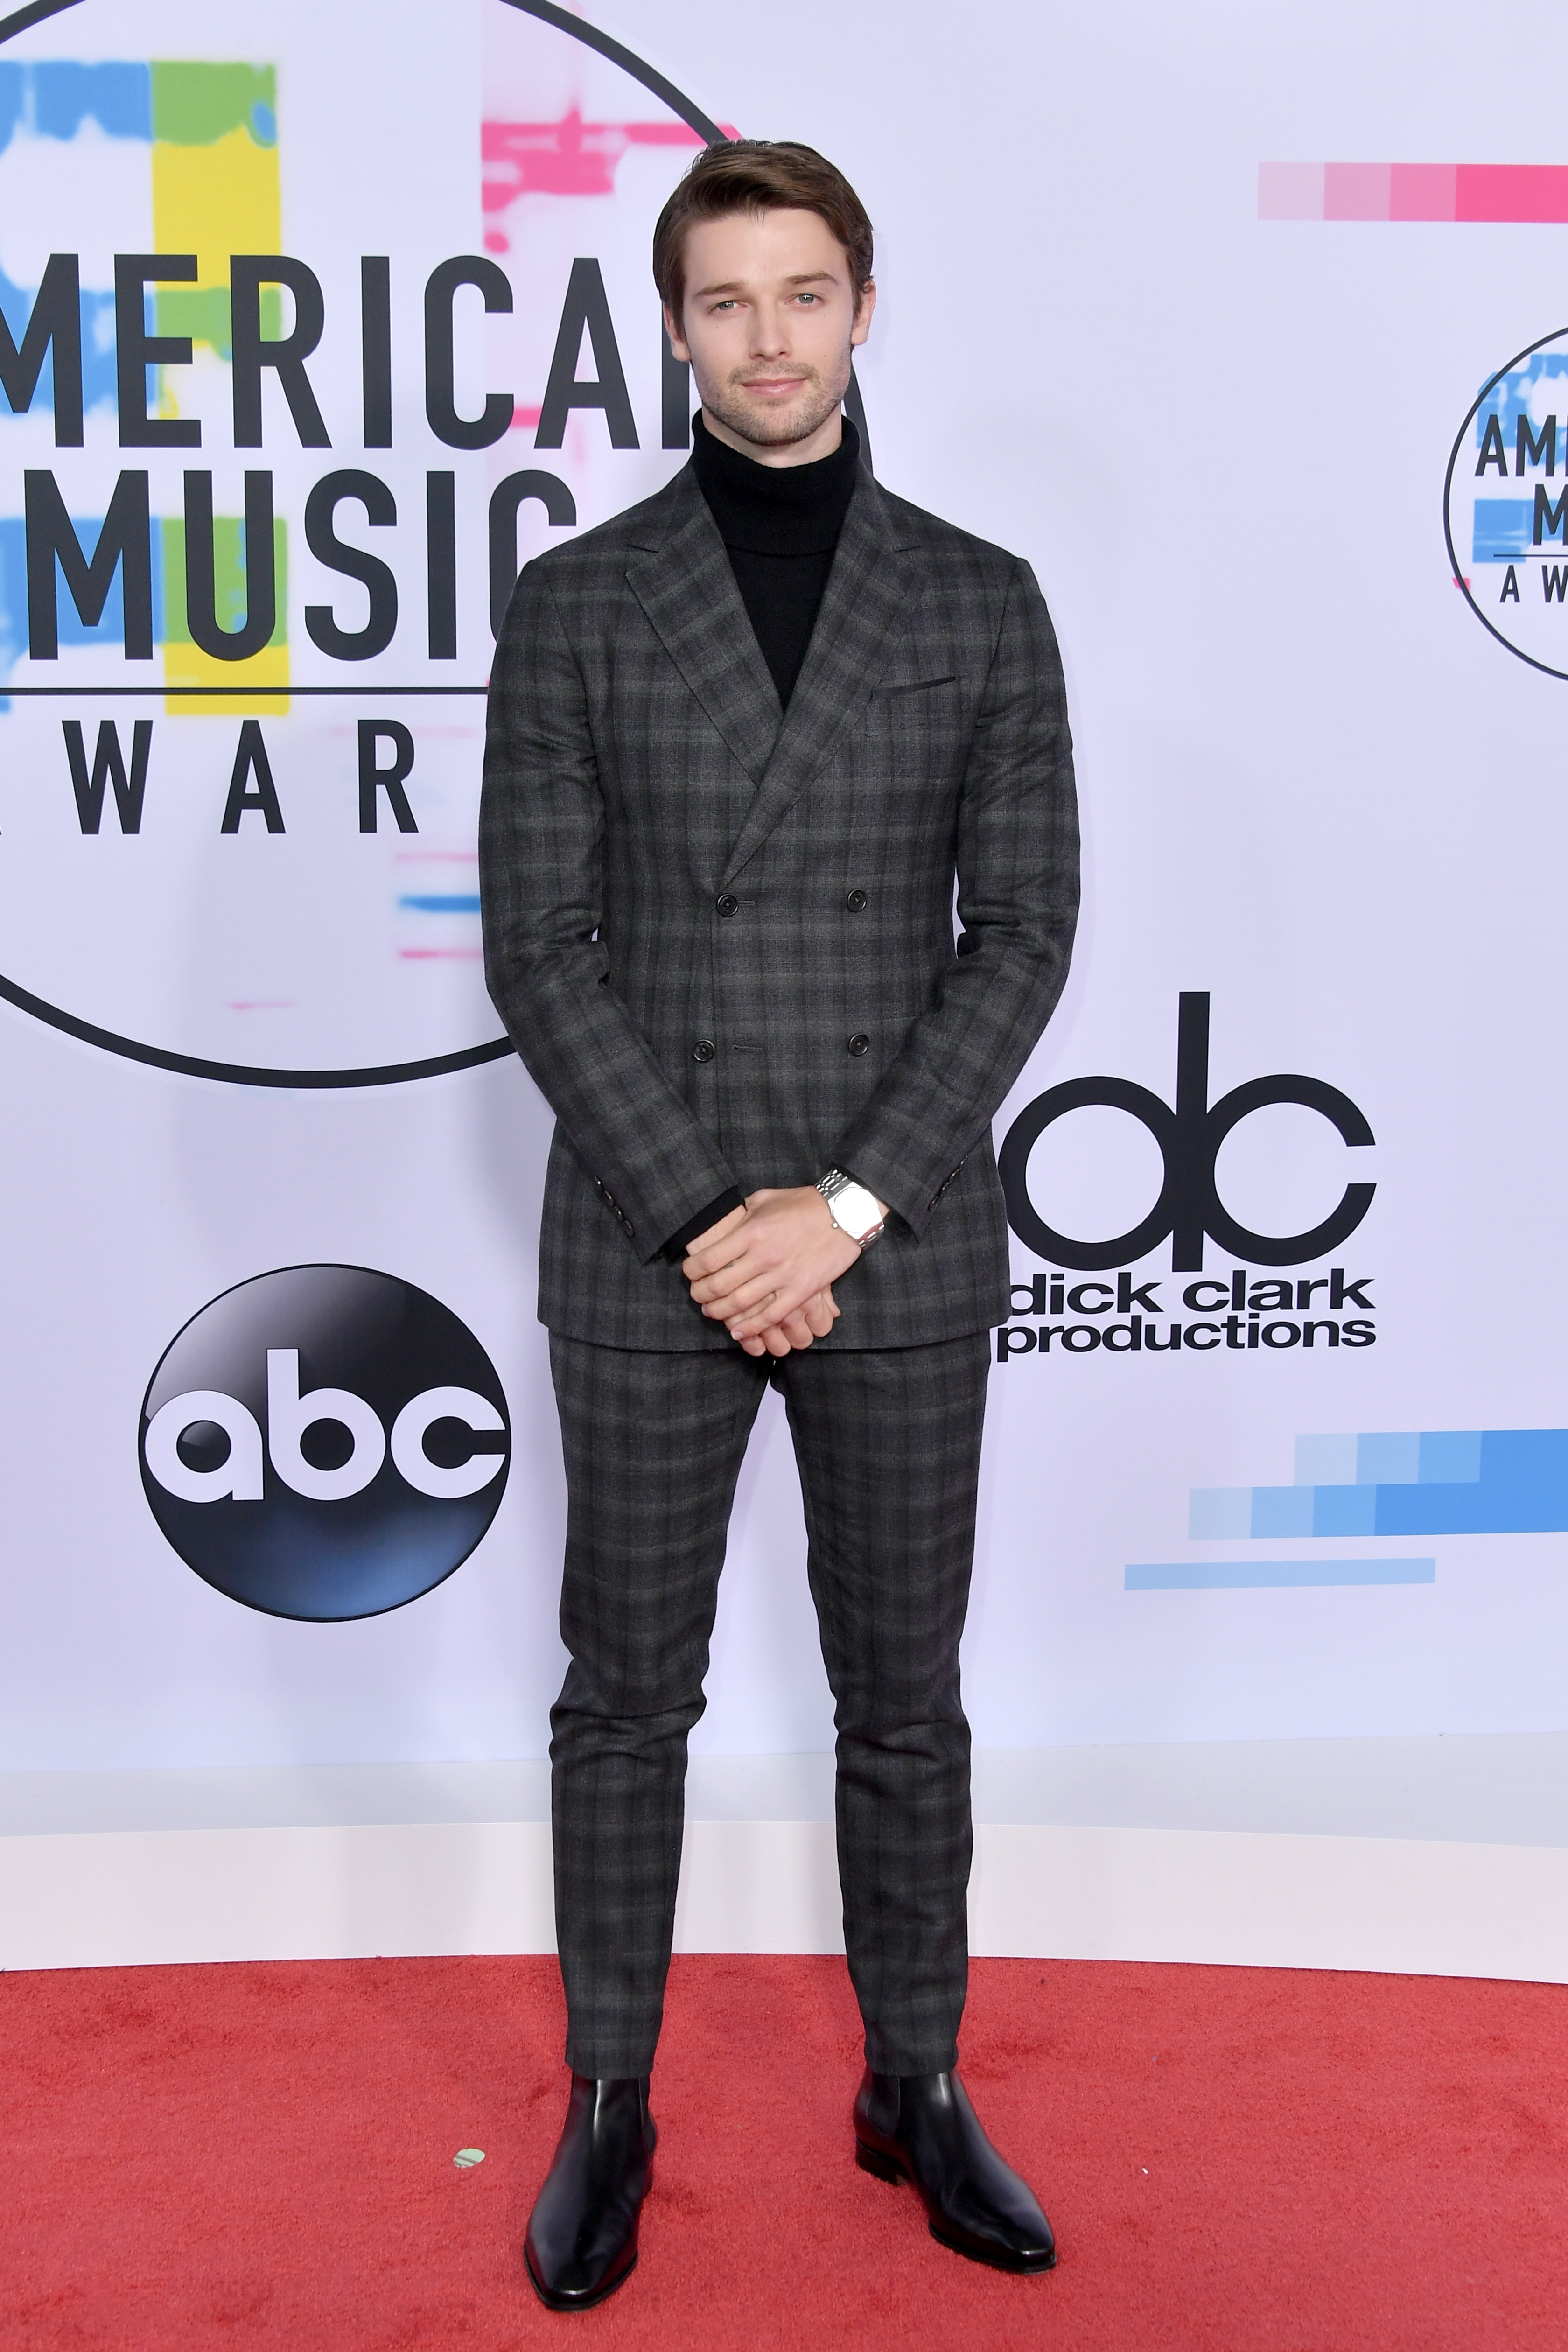 Patrick Schwarzenegger attends the American Music Awards at the Microsoft Theater in Los Angeles on Nov. 19, 2017.